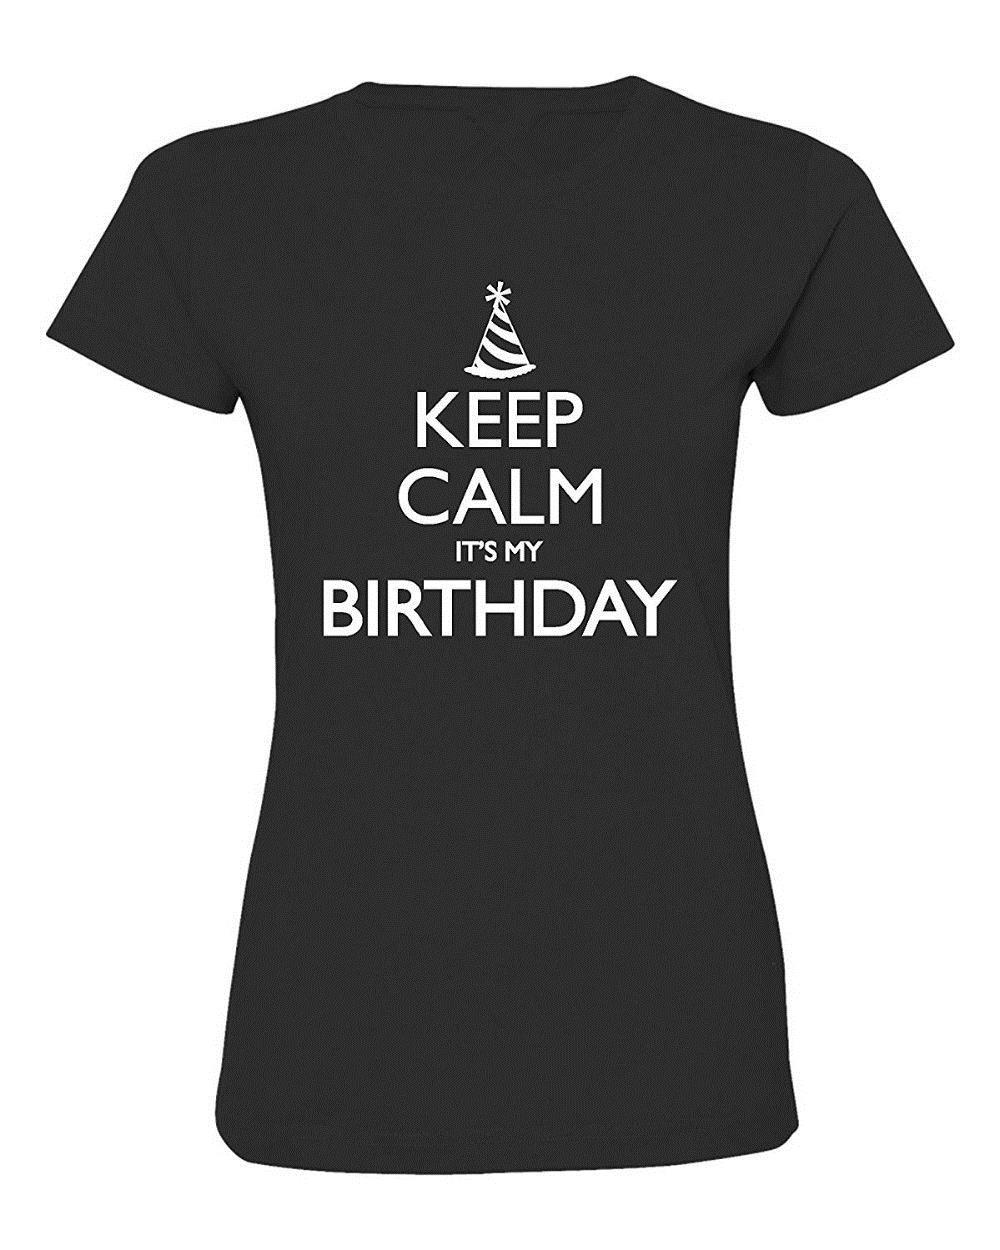 Make Your Own T Shirt Design Women Keep Calm ItS My Birthday Deluxe Soft O Neck Short Sleeve Shirts Tees Online Print From Topteeforprint